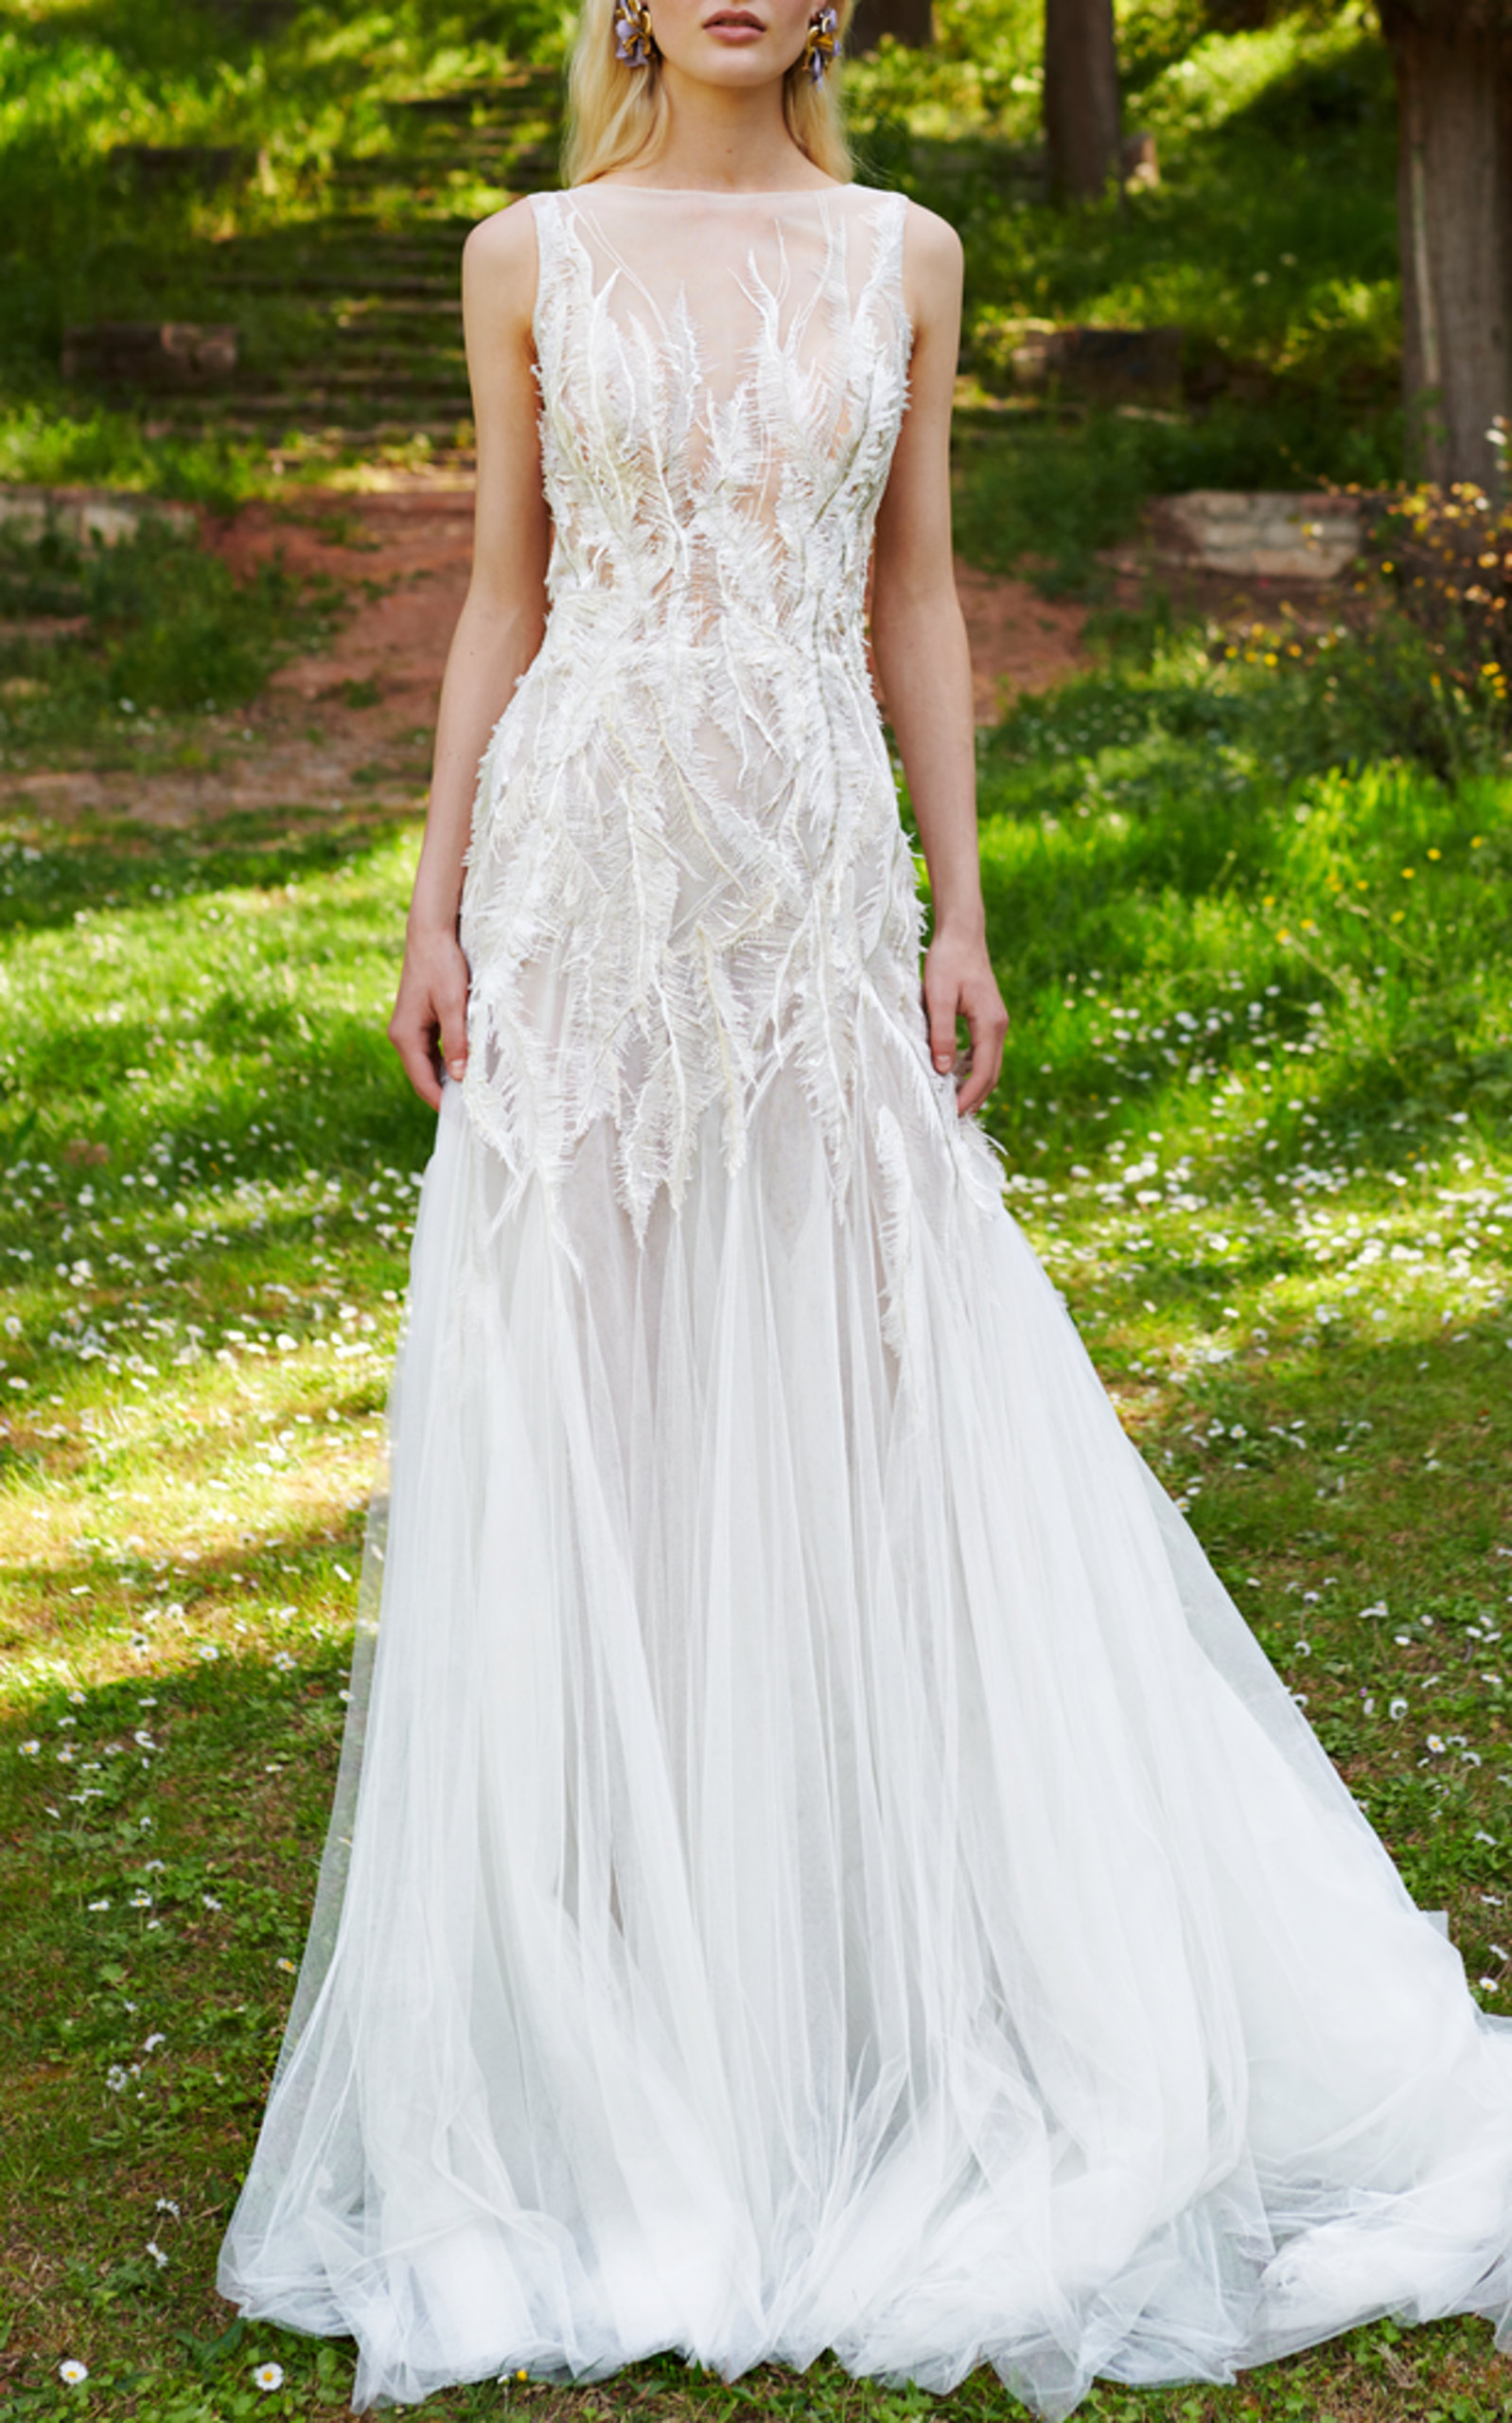 COSTARELLOS BRIDAL FEATHER LACE DRESS